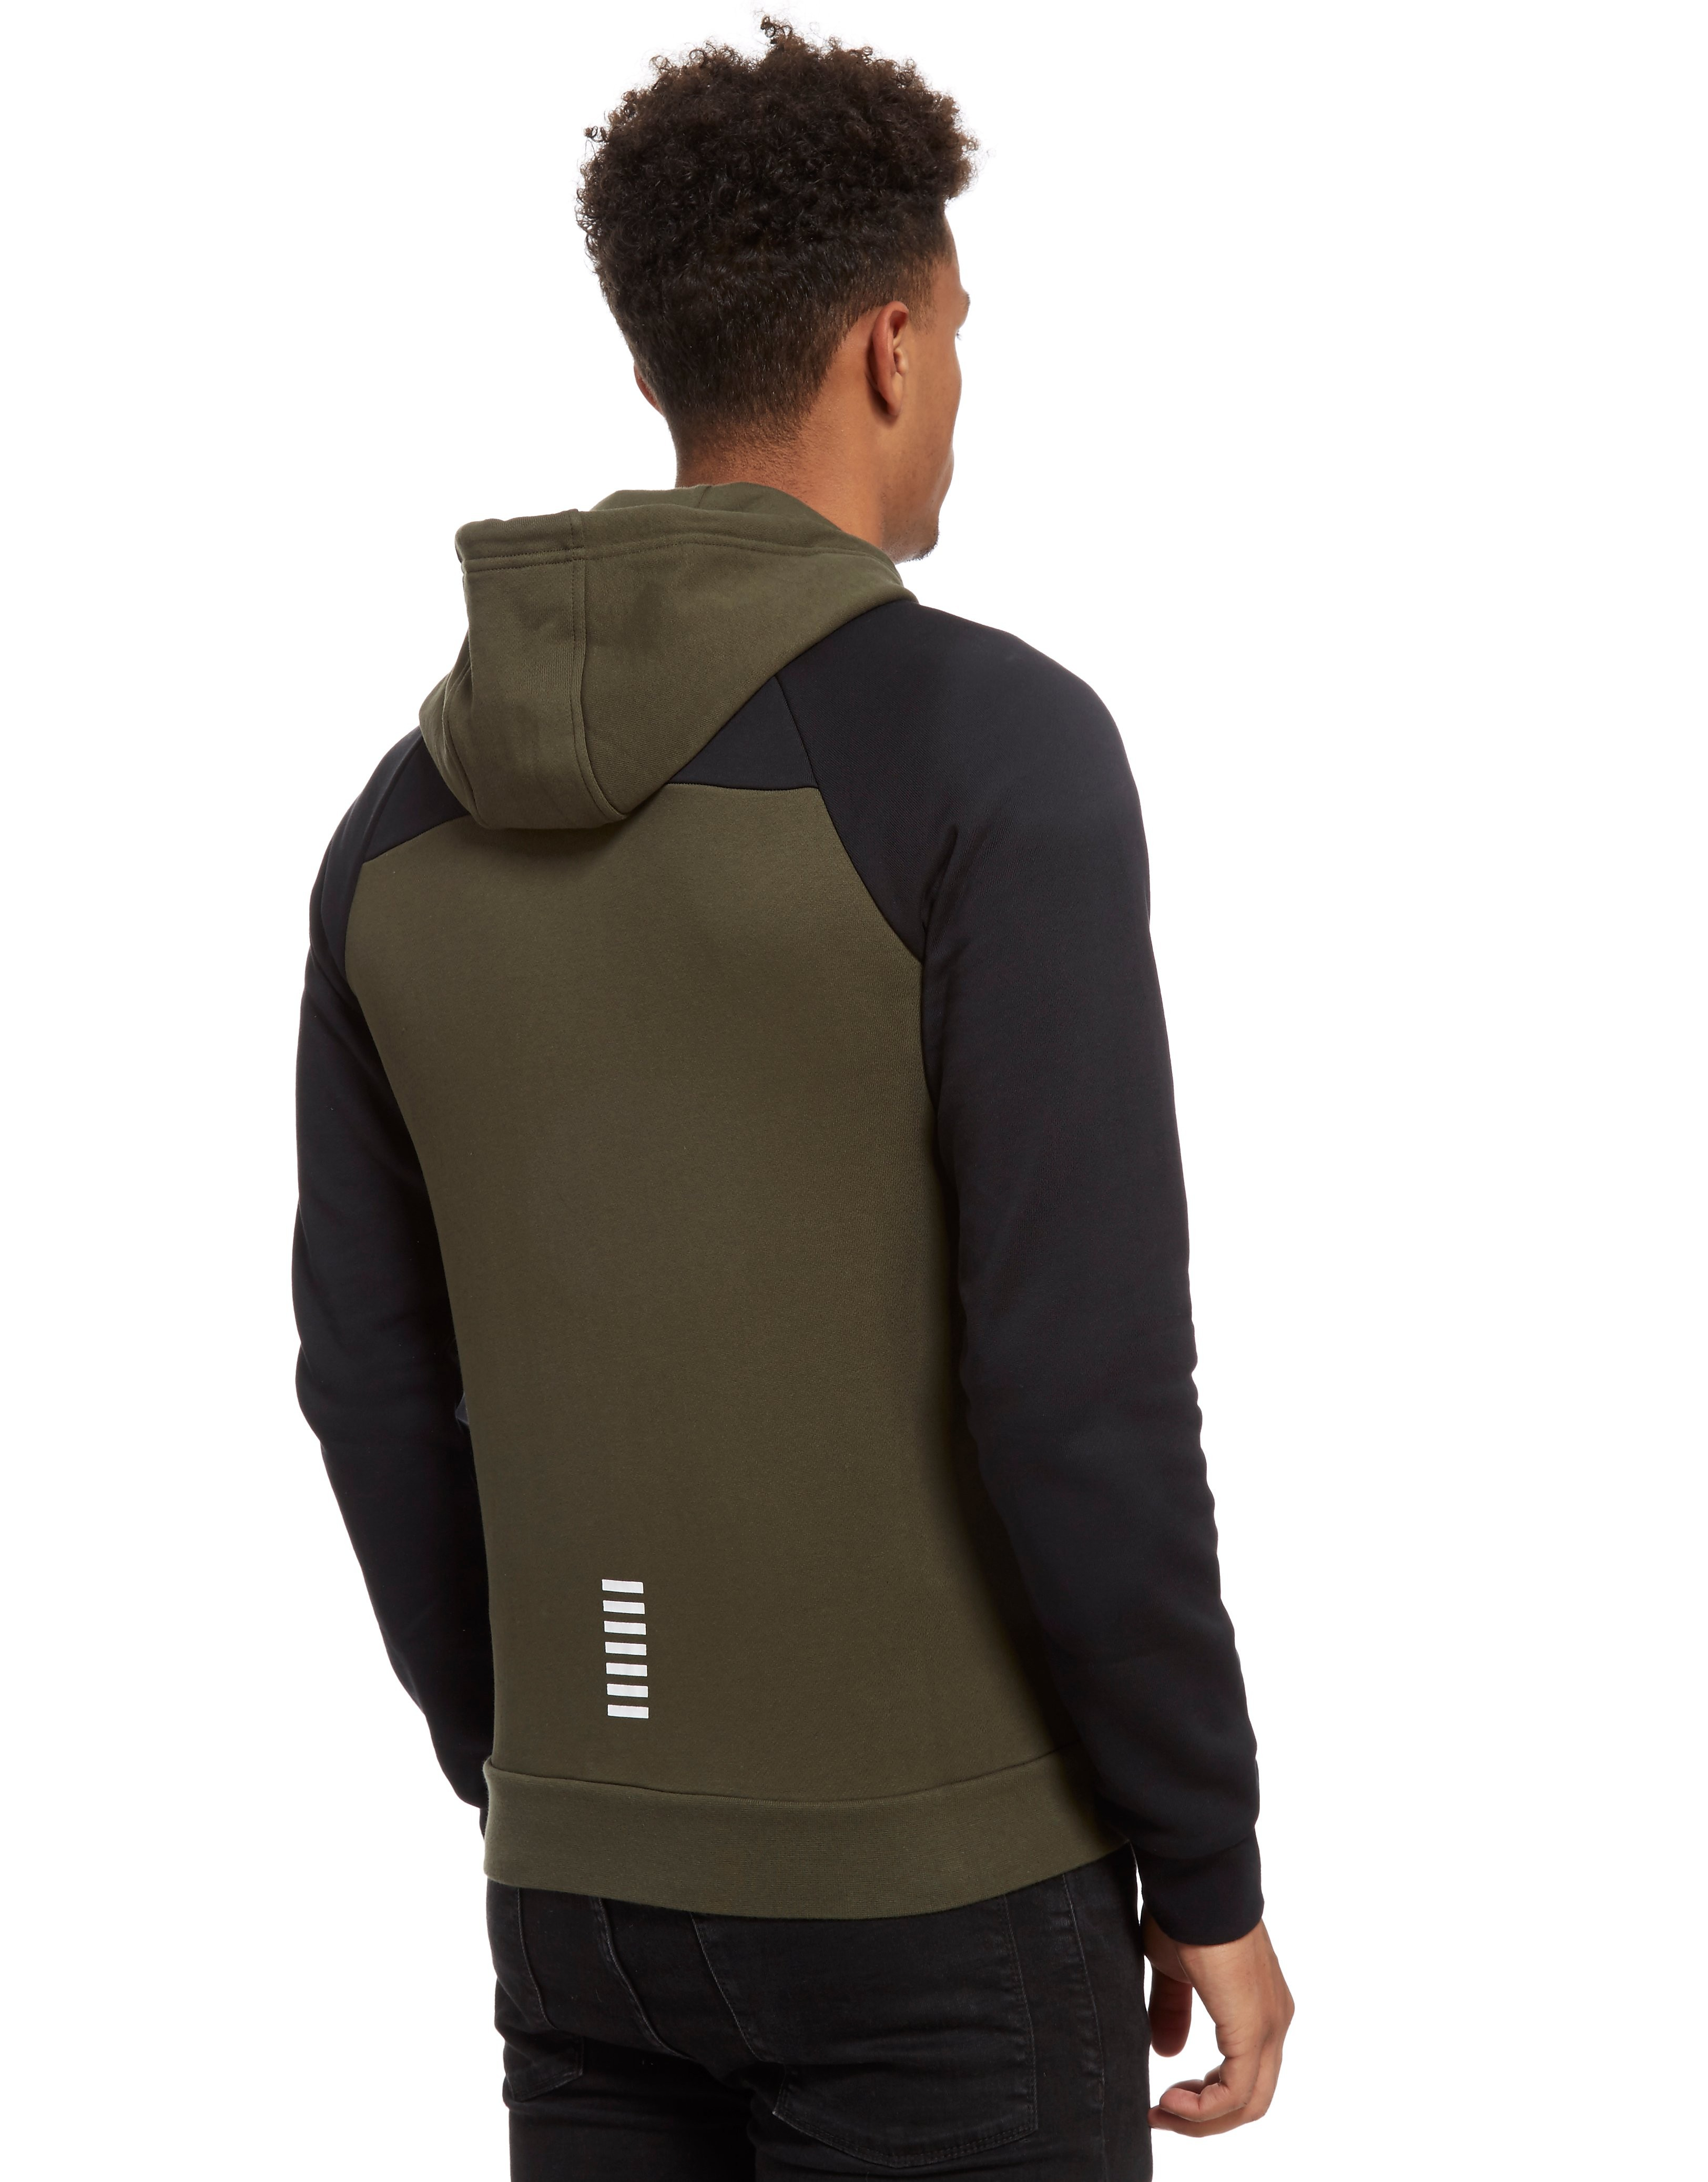 Emporio Armani EA7 Colourblock Zip Through Hoodie